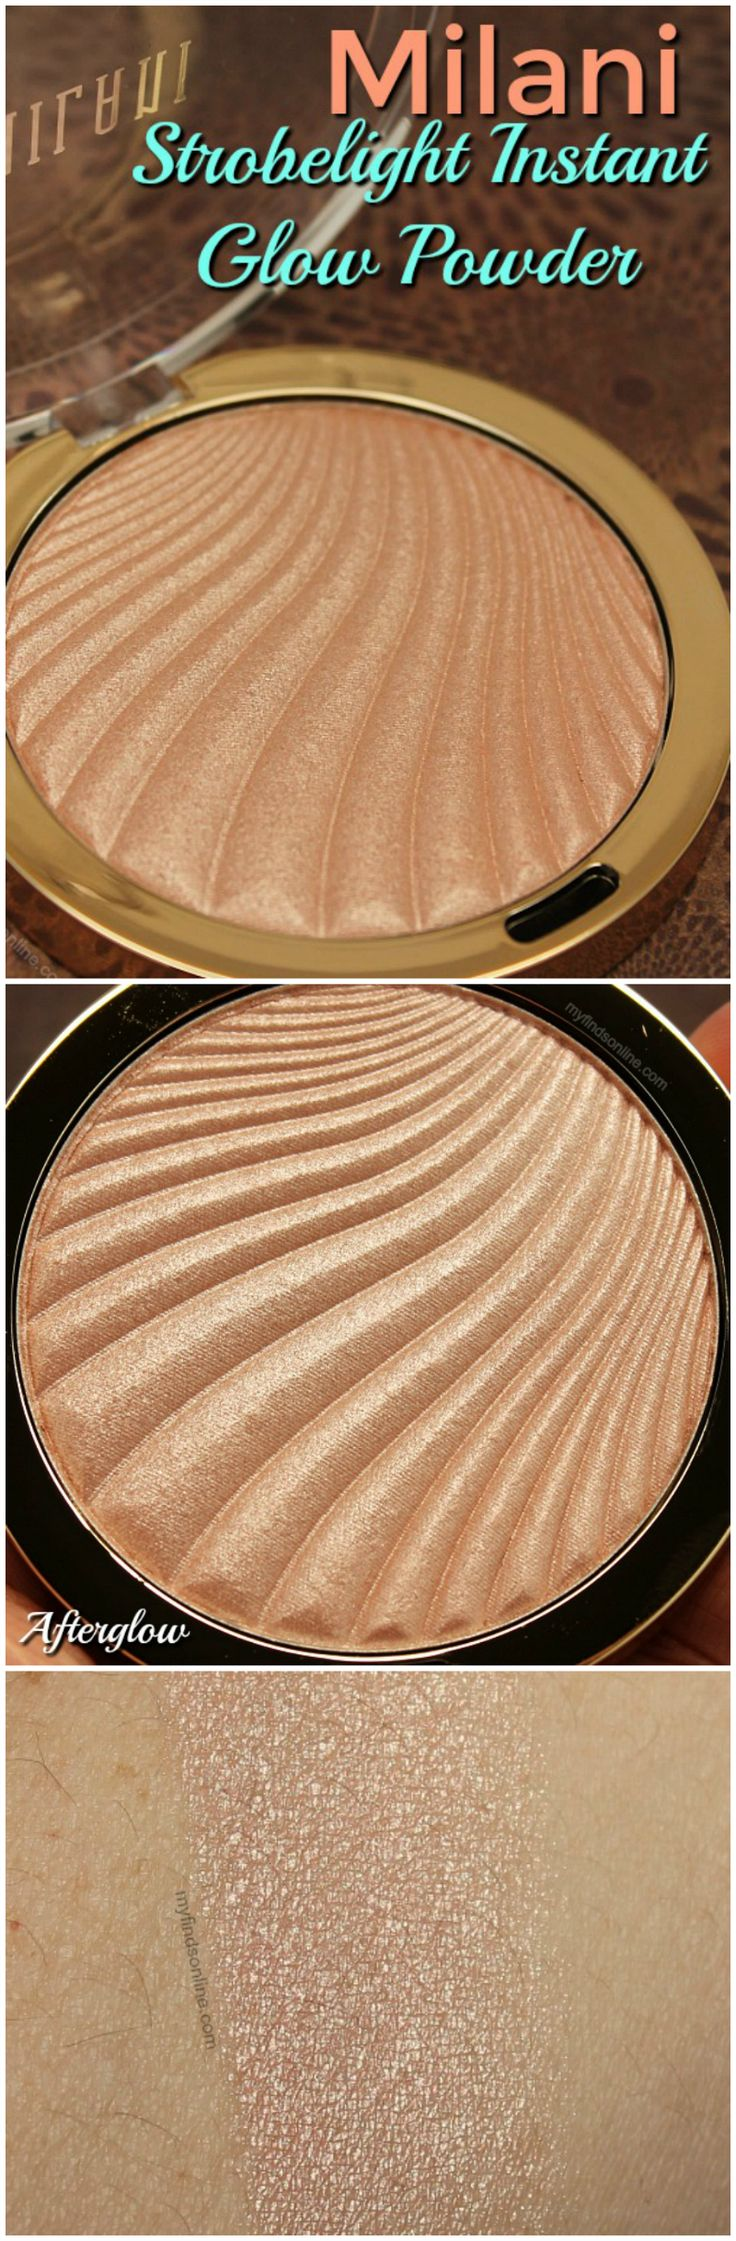 Strobelight Instant Glow Powder by Milani #18